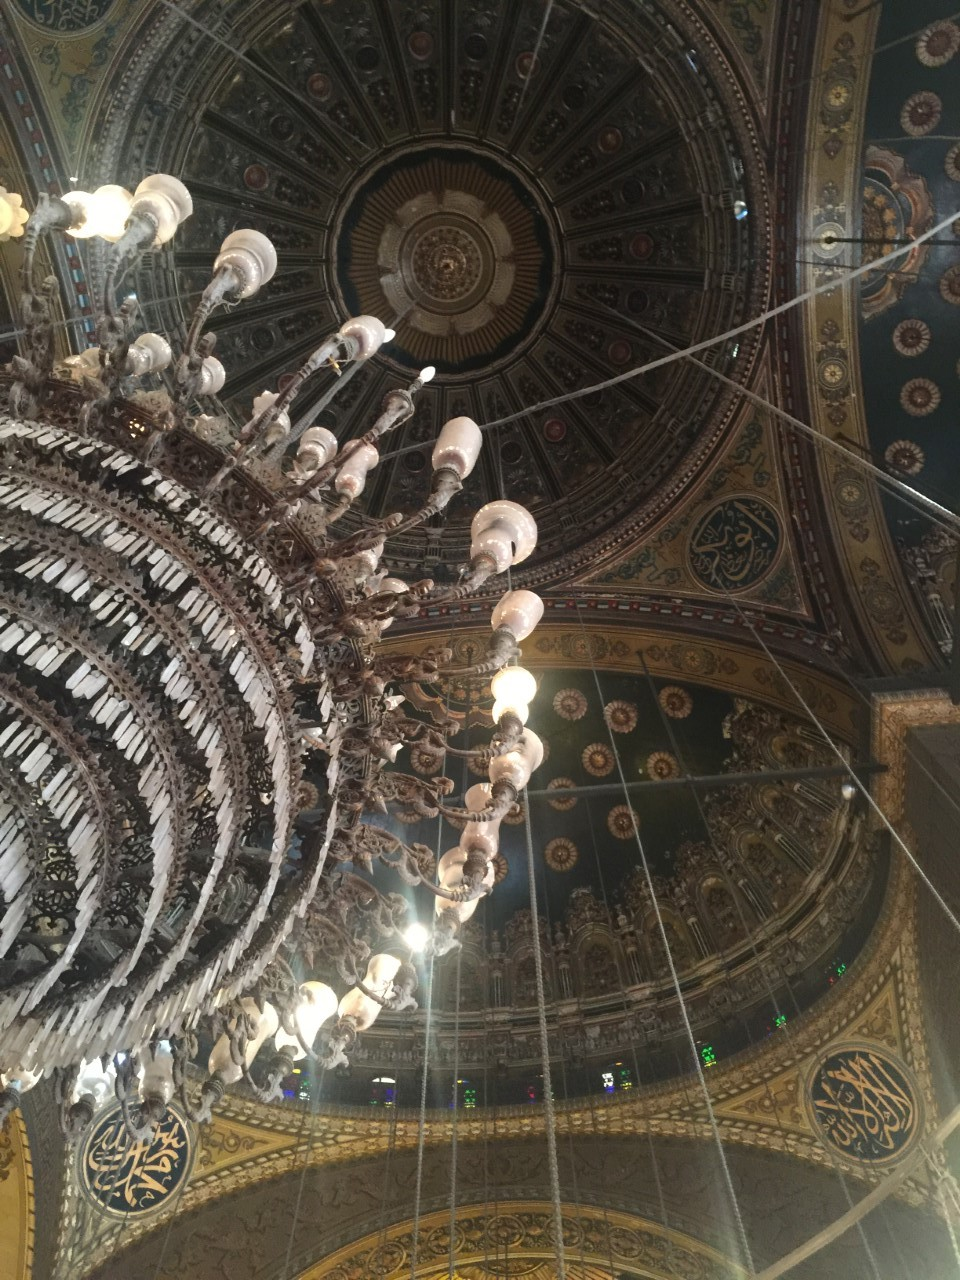 AL AZHAR MOSQUE - Stunning architecture, beautiful entrance and impressive roofed halls.